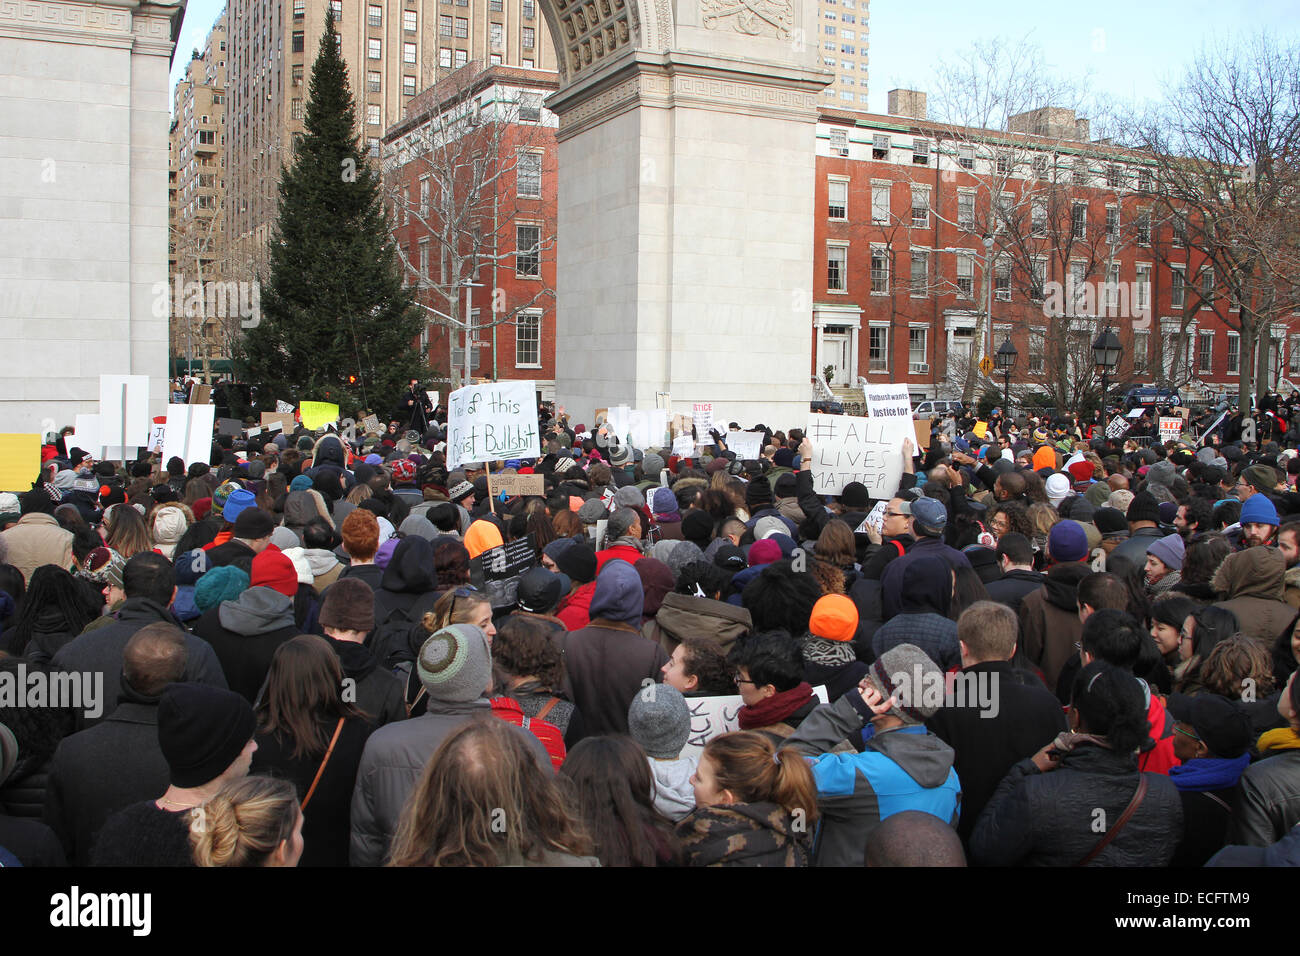 NEW YORK, NEW YORK - DECEMBER 13: Thousands of demonstrators gather at Washington Square Park in lower Manhattan - Stock Image